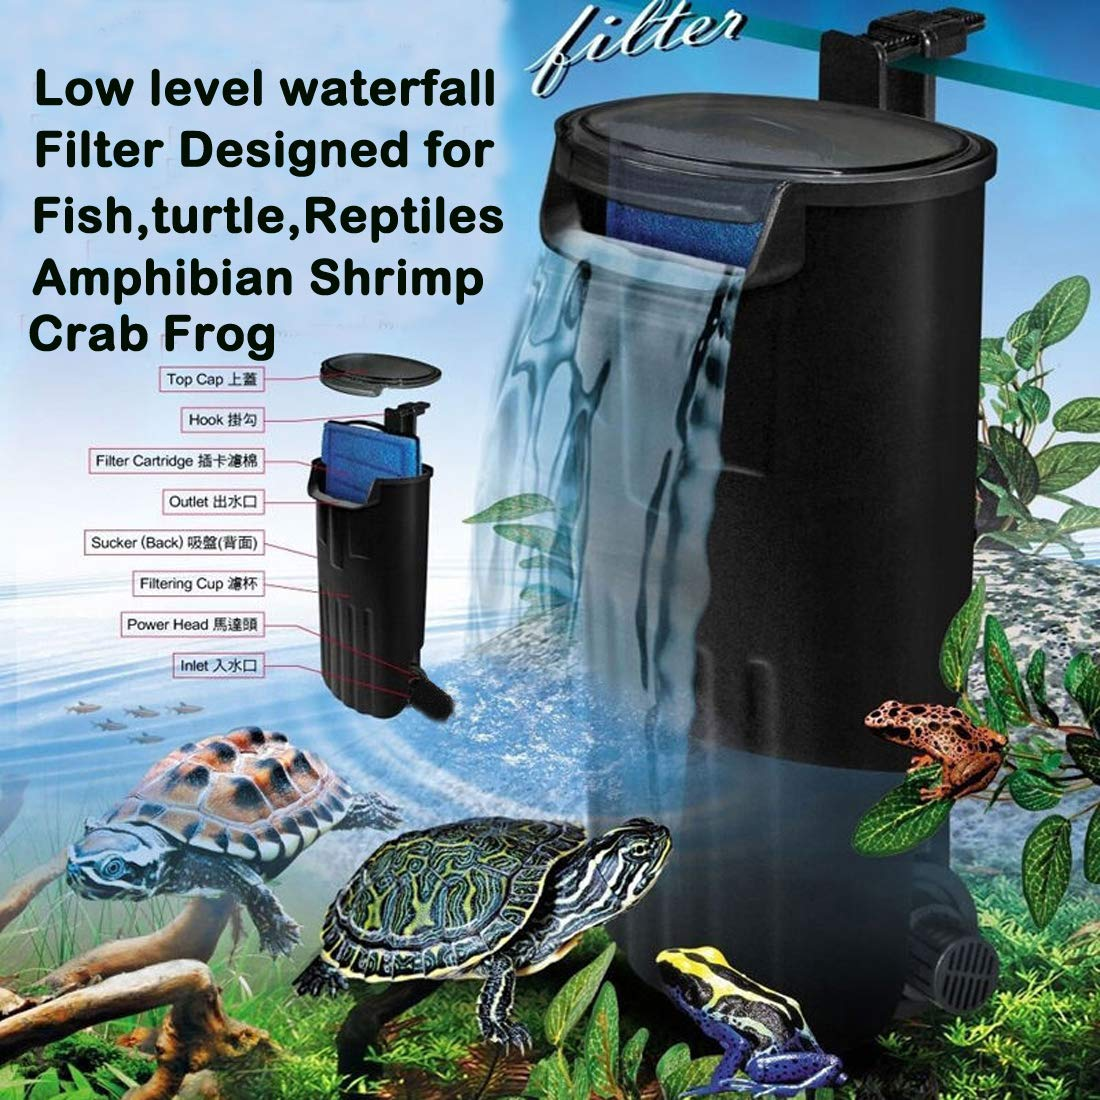 Aquarium Turtle Filter Quiet Flow Water Clean Pump Bio Filtration for Reptiles Tank Low Level Waterfall Filter for Small Fish Tank Turtle Tank Shrimp Tank Amphibian Frog Crab